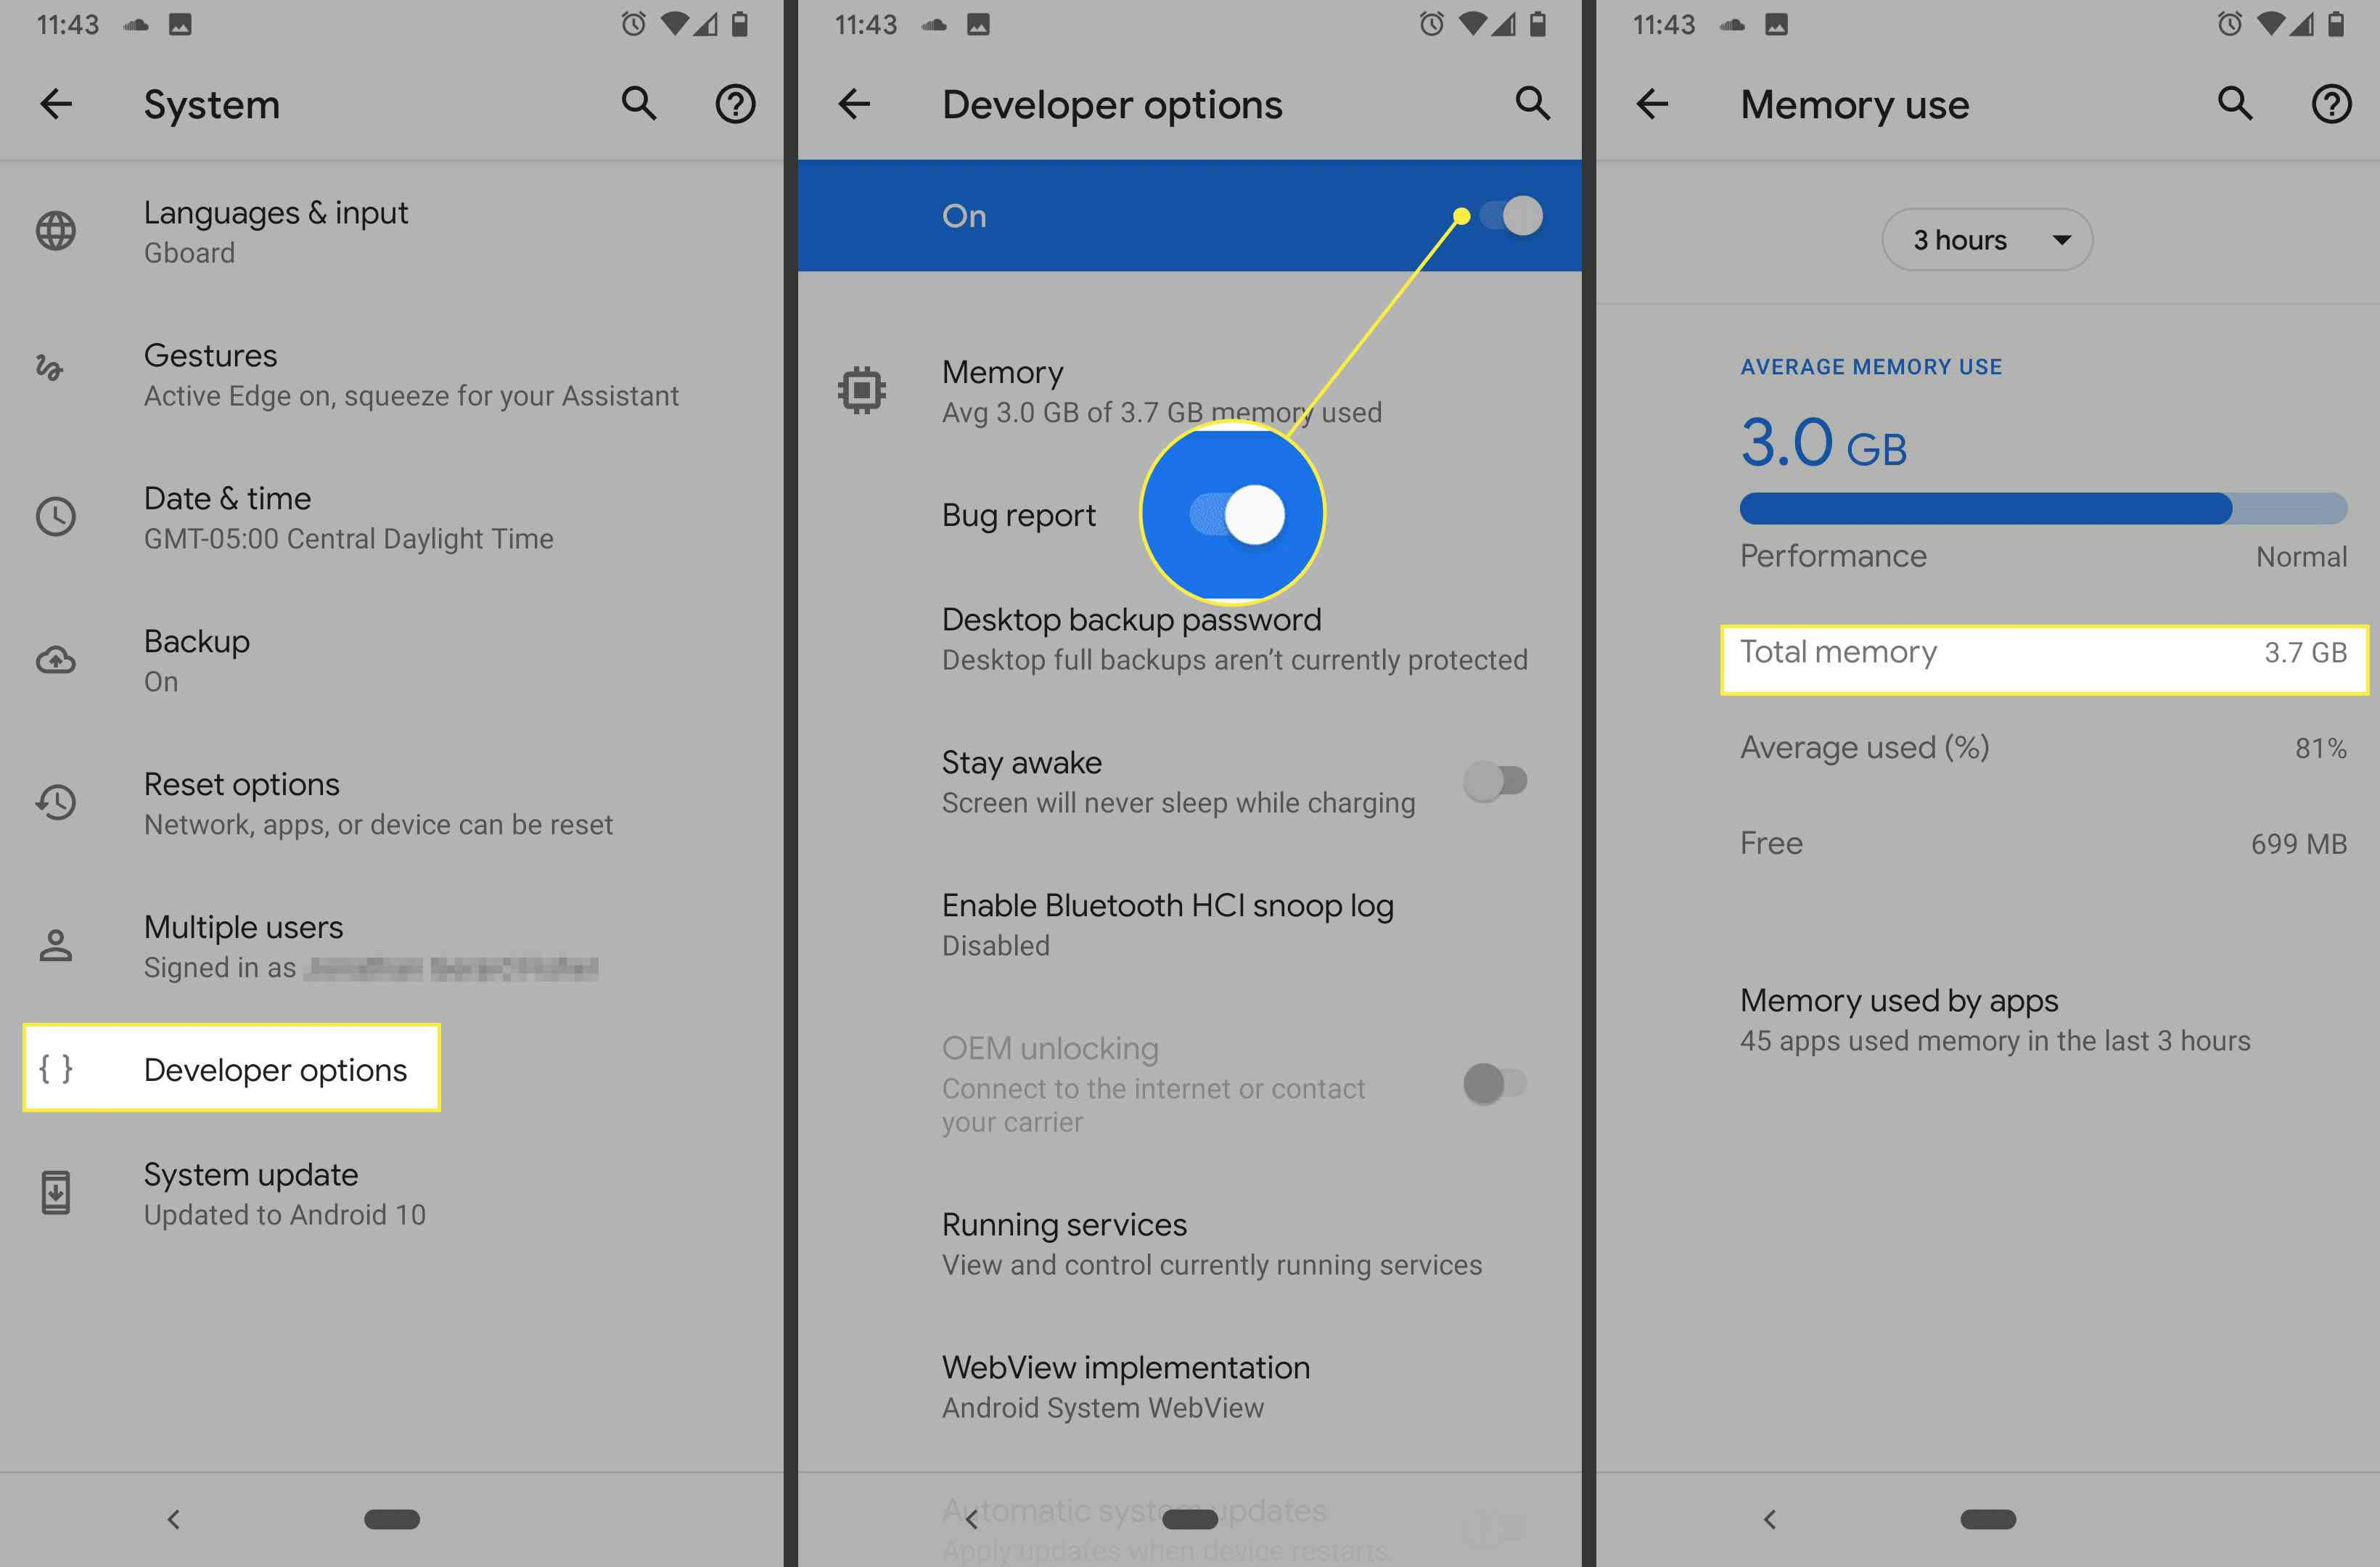 Android system, developer options, memory use screens.